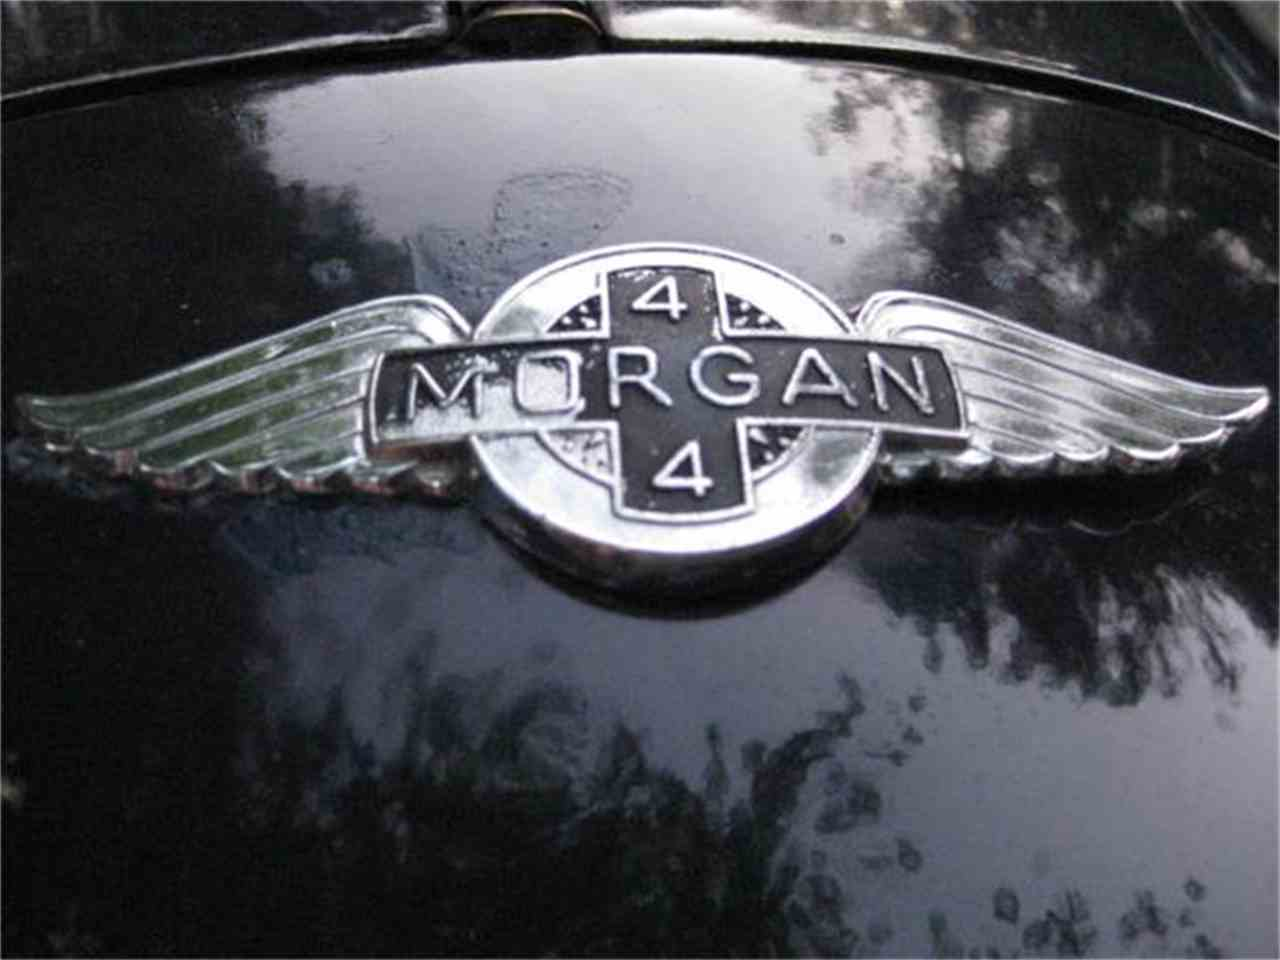 59000 1966 morgan 4 4 std c 1966 morgan 4 4 for sale classiccars com cc 709972 morgan 4/4 fuse box at pacquiaovsvargaslive.co